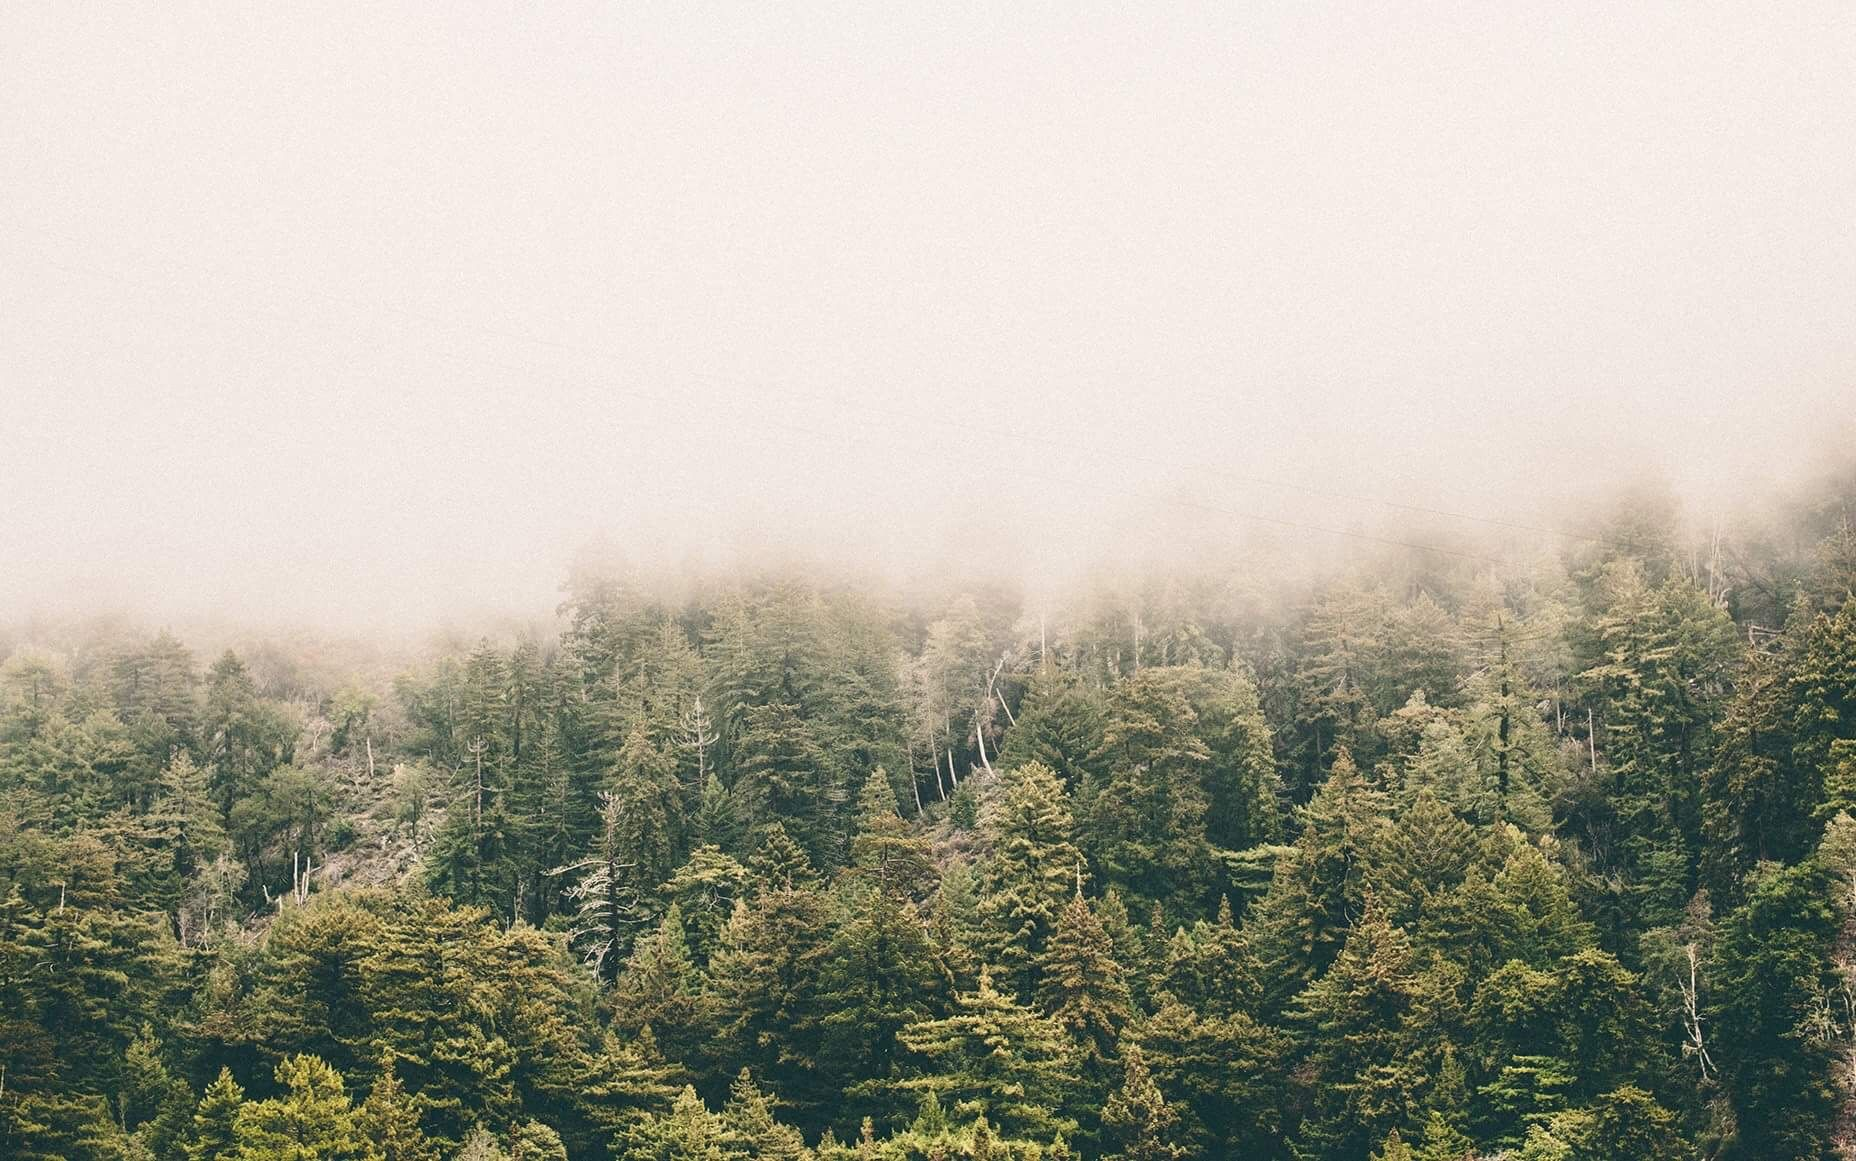 Pin by Laurence Deschênes on Wallpaper Foggy forest